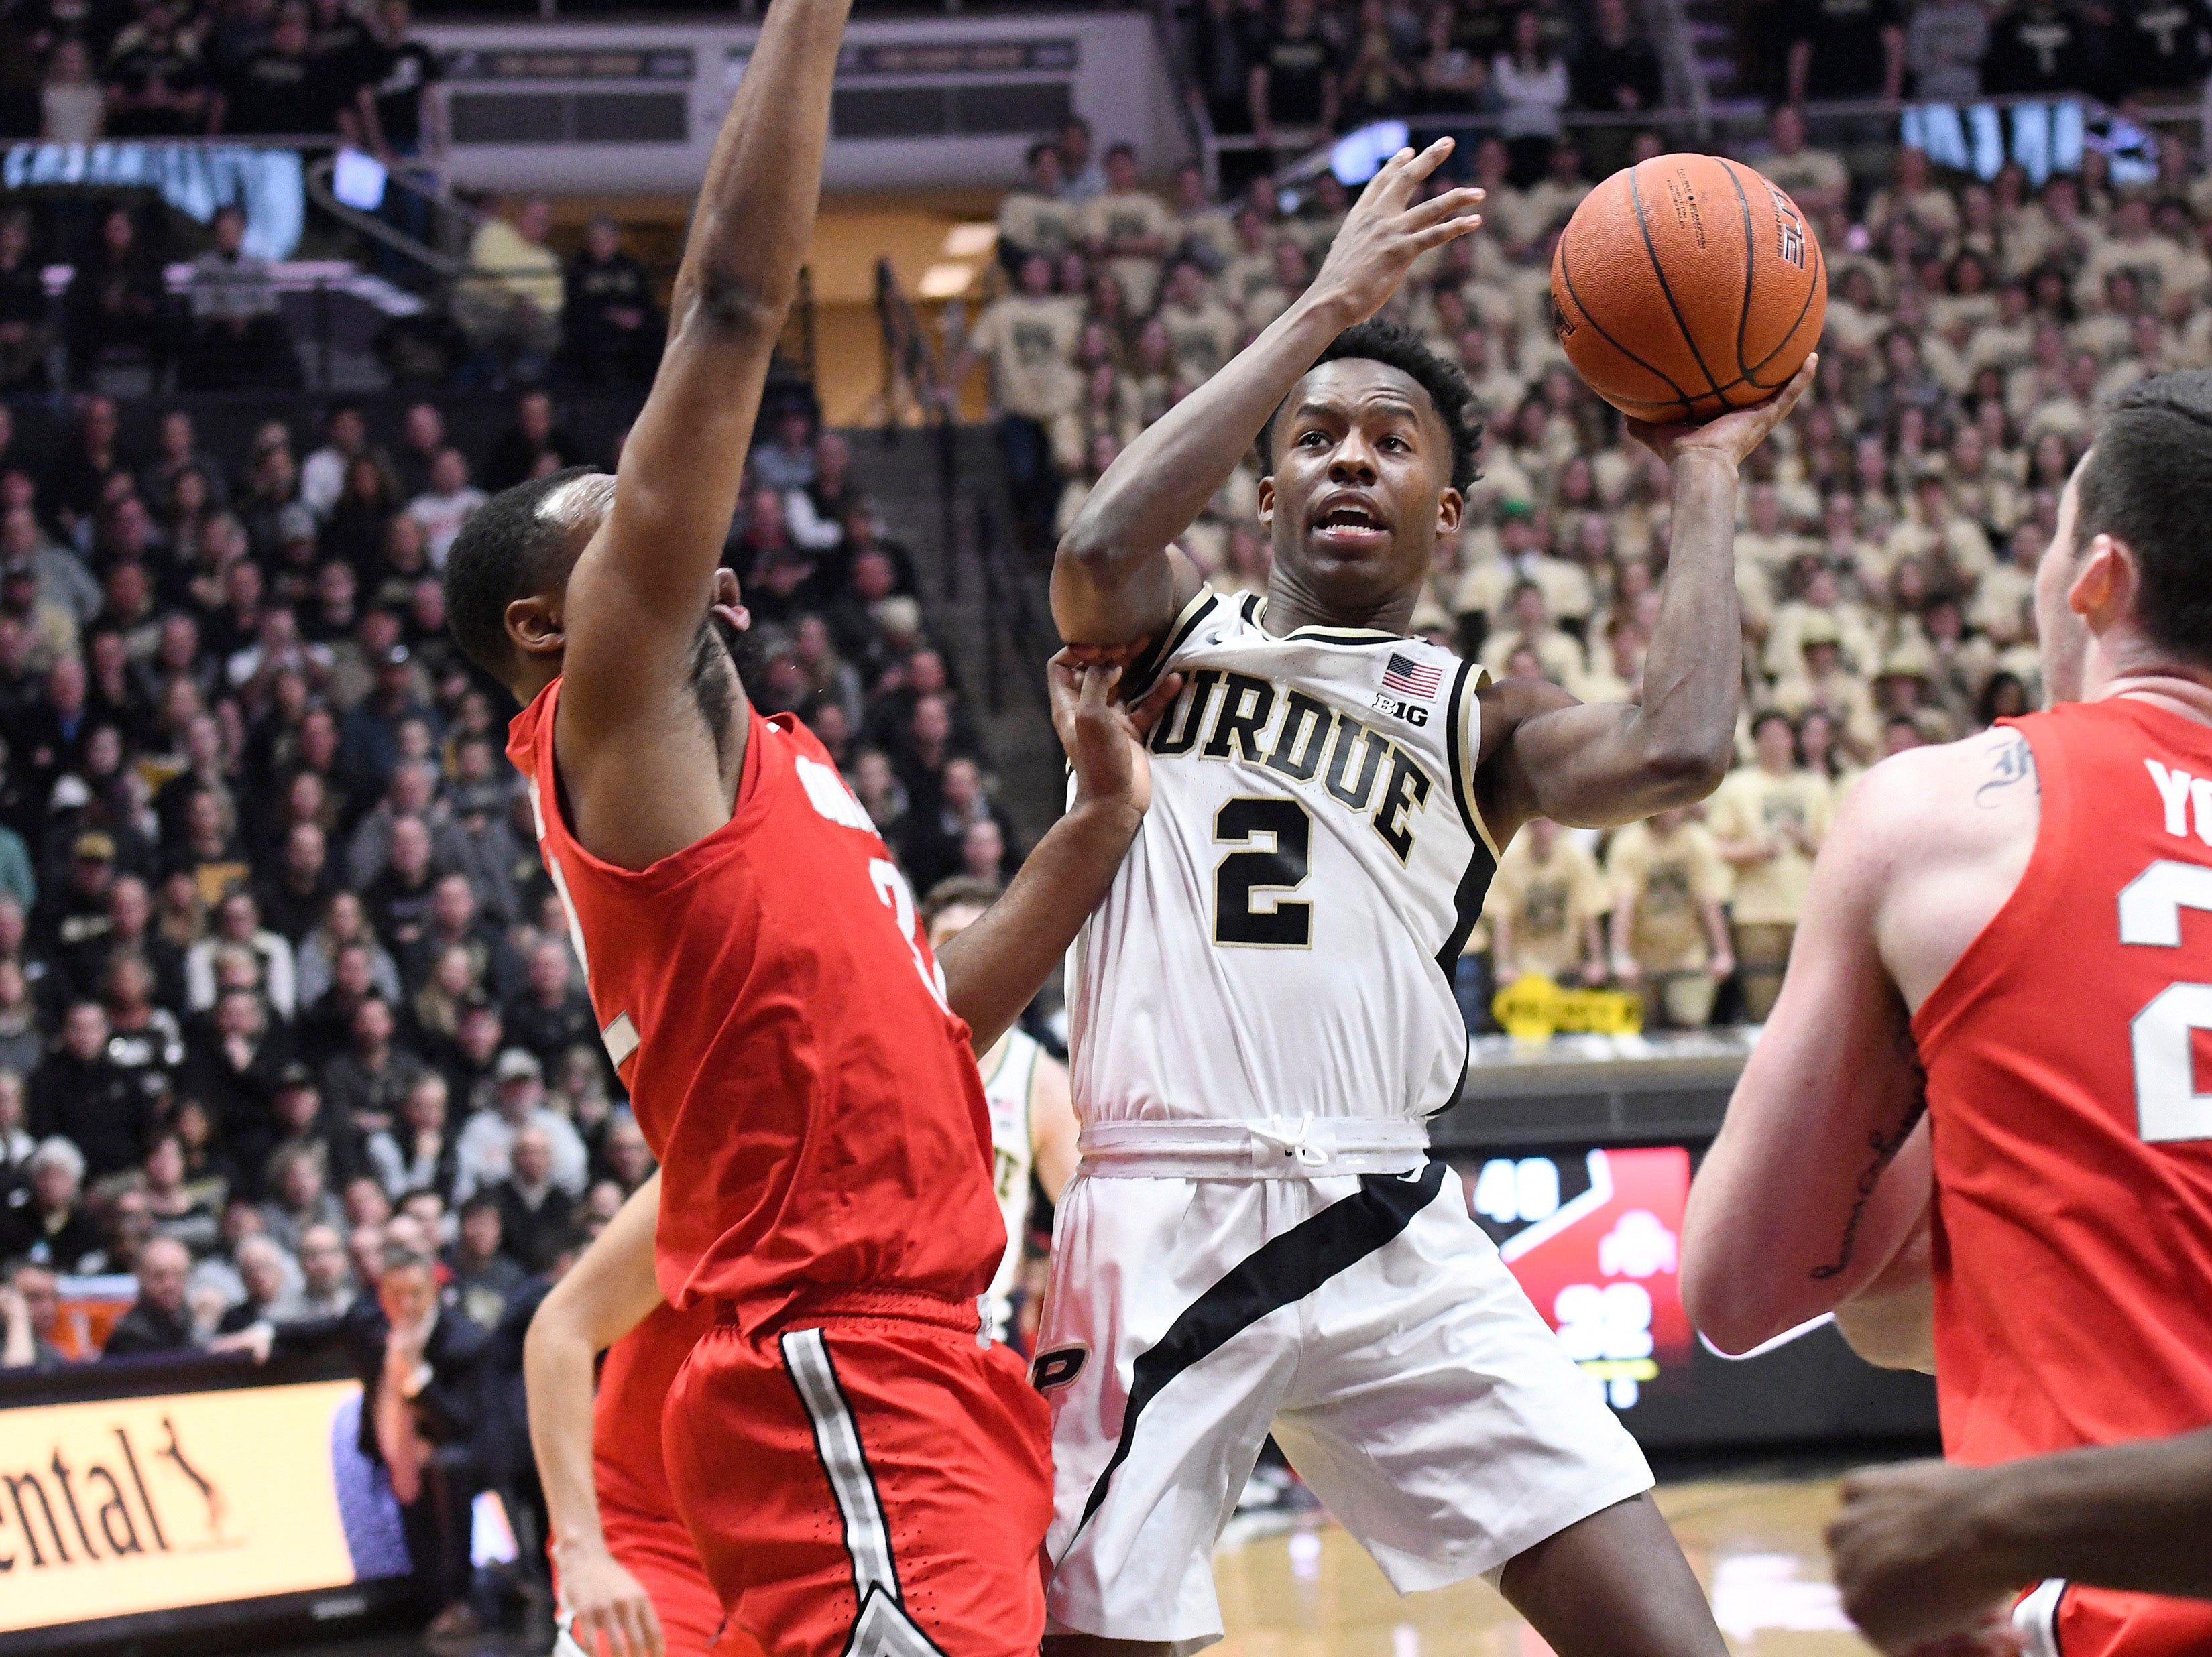 Mar 2, 2019; West Lafayette, IN, USA; Purdue Boilermakers guard Eric Hunter Jr. (2) drives or a shot past the Ohio State Buckeye defenders in the 2nd half at Mackey Arena. Mandatory Credit: Sandra Dukes-USA TODAY Sports